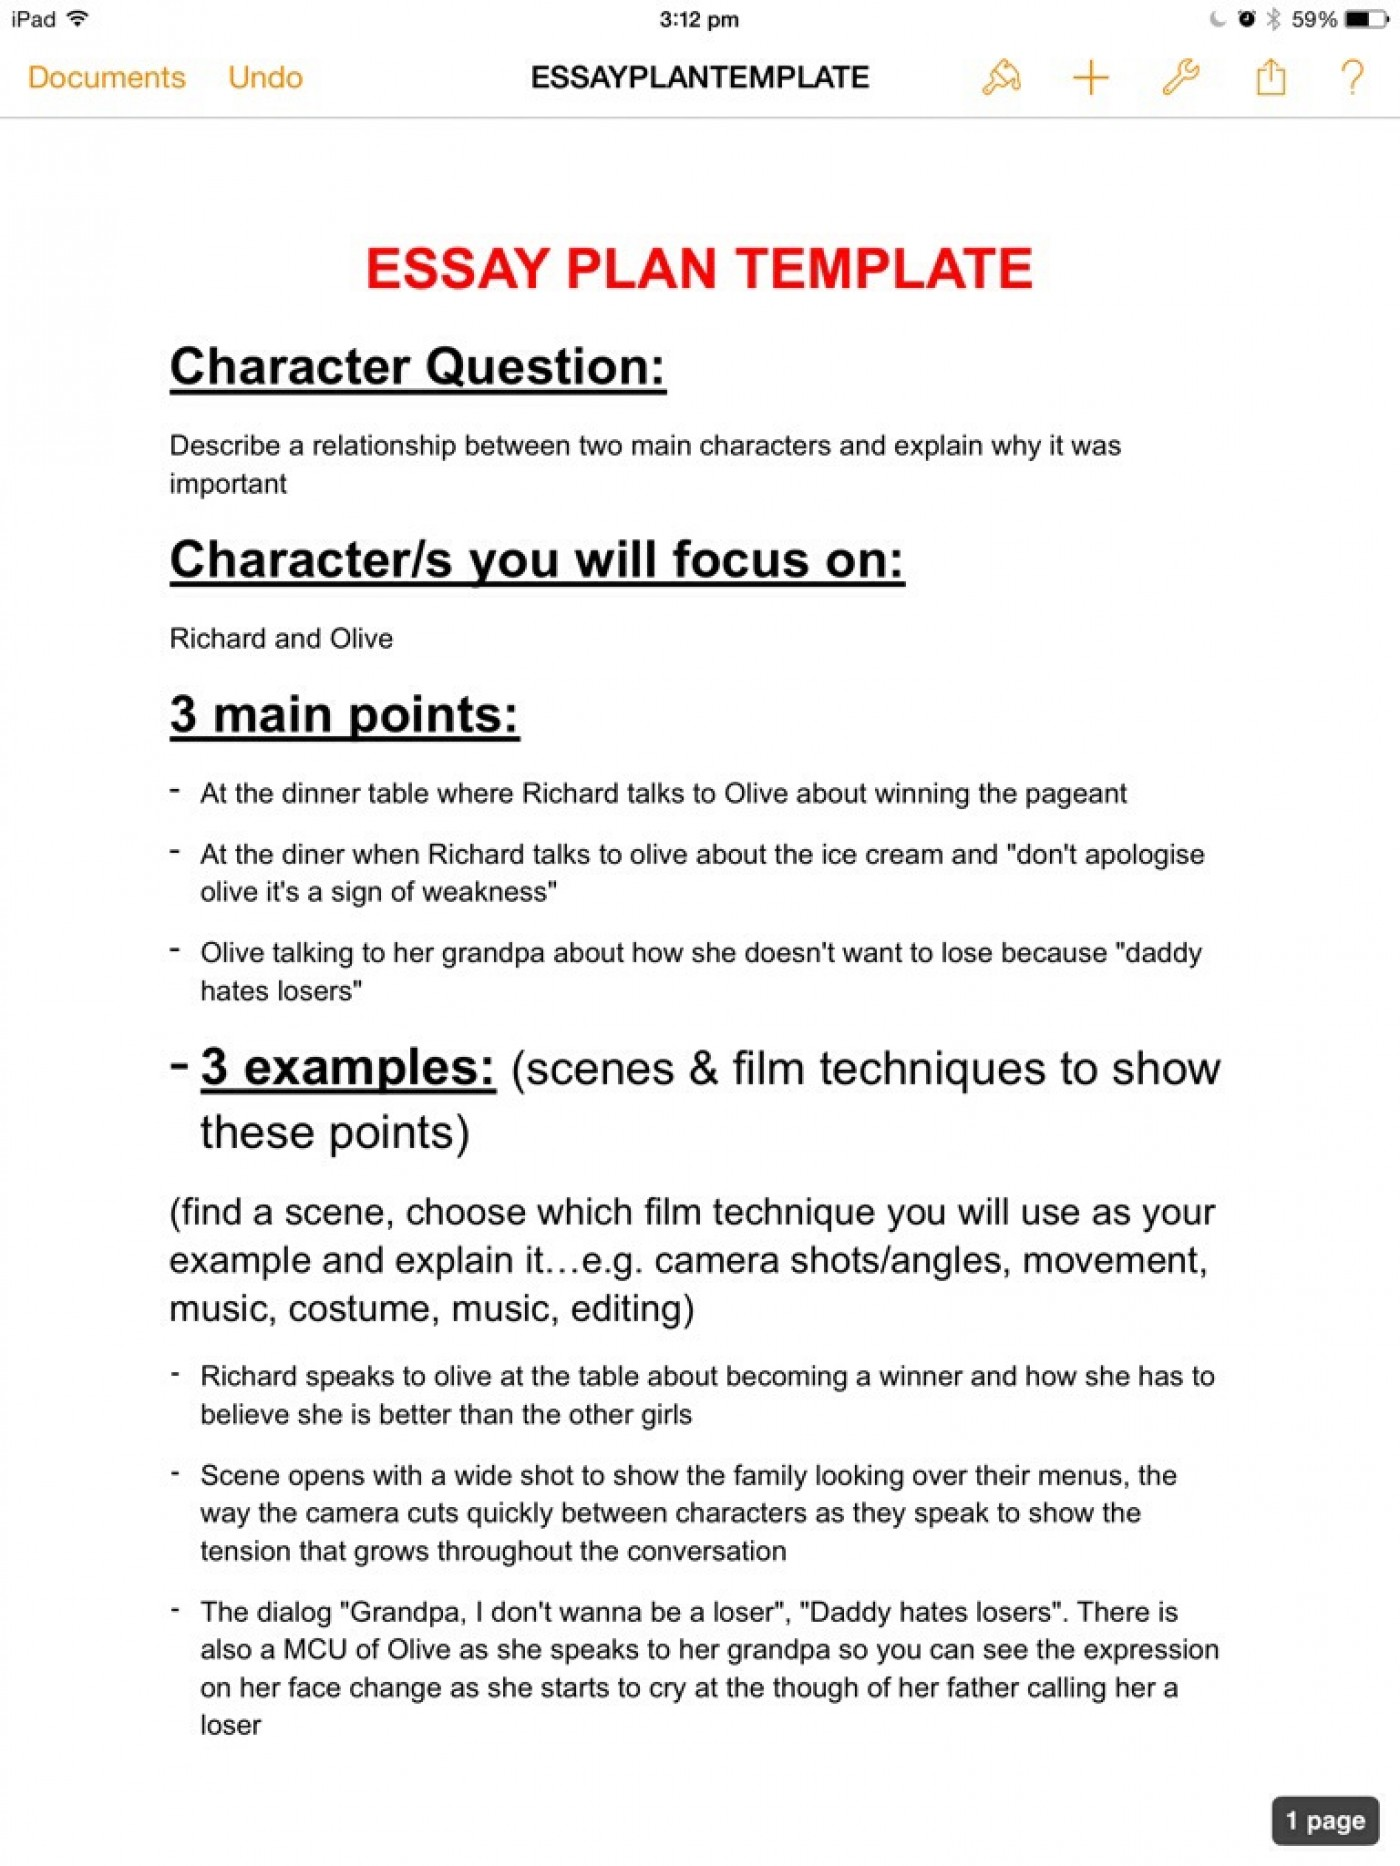 009 Good 3rd Grade Writing Lesson Plans College Essay Plan